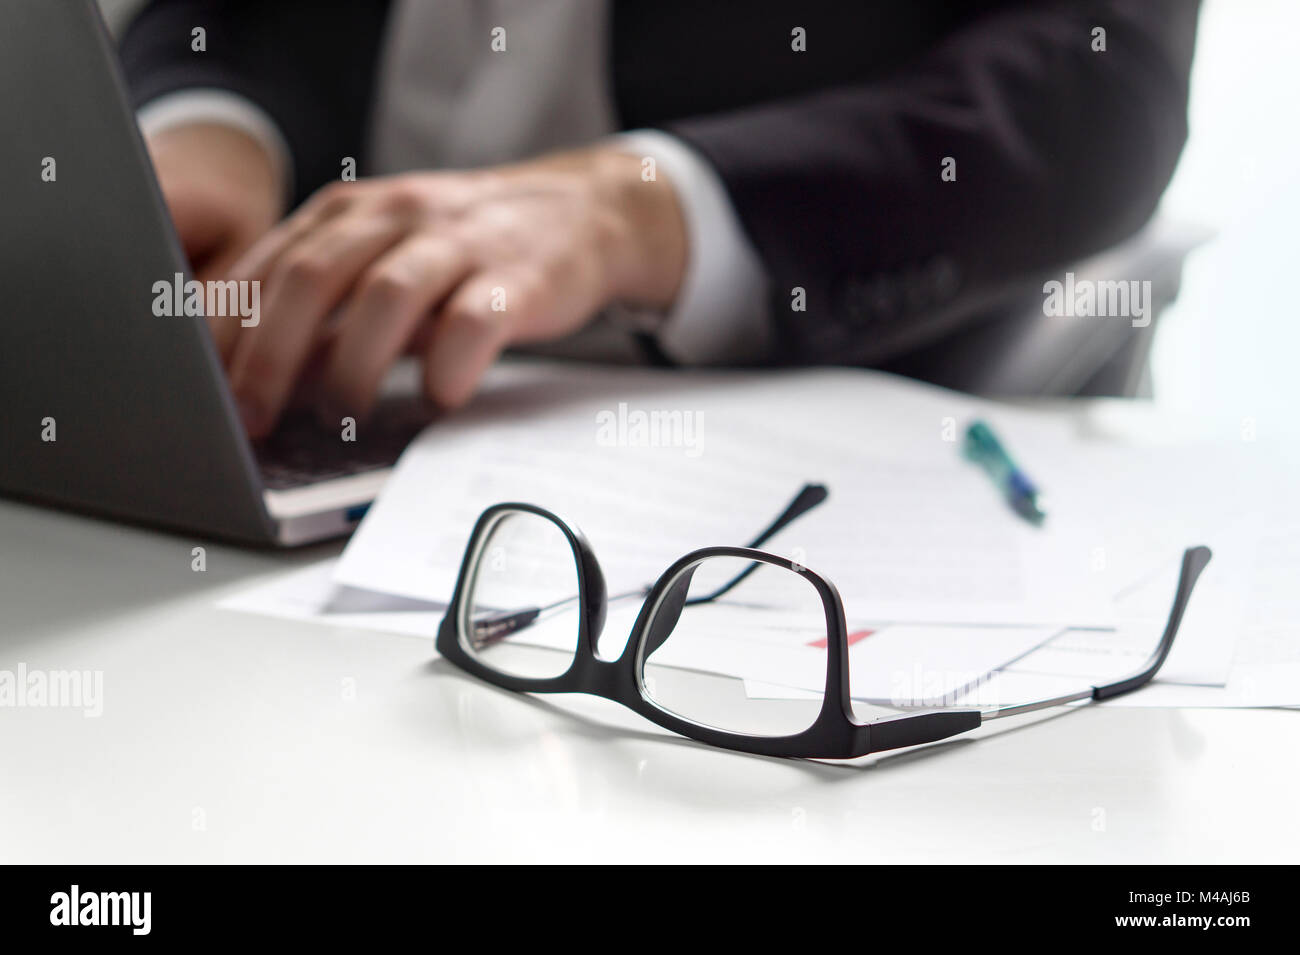 Business man writing with laptop in office with glasses on table. - Stock Image